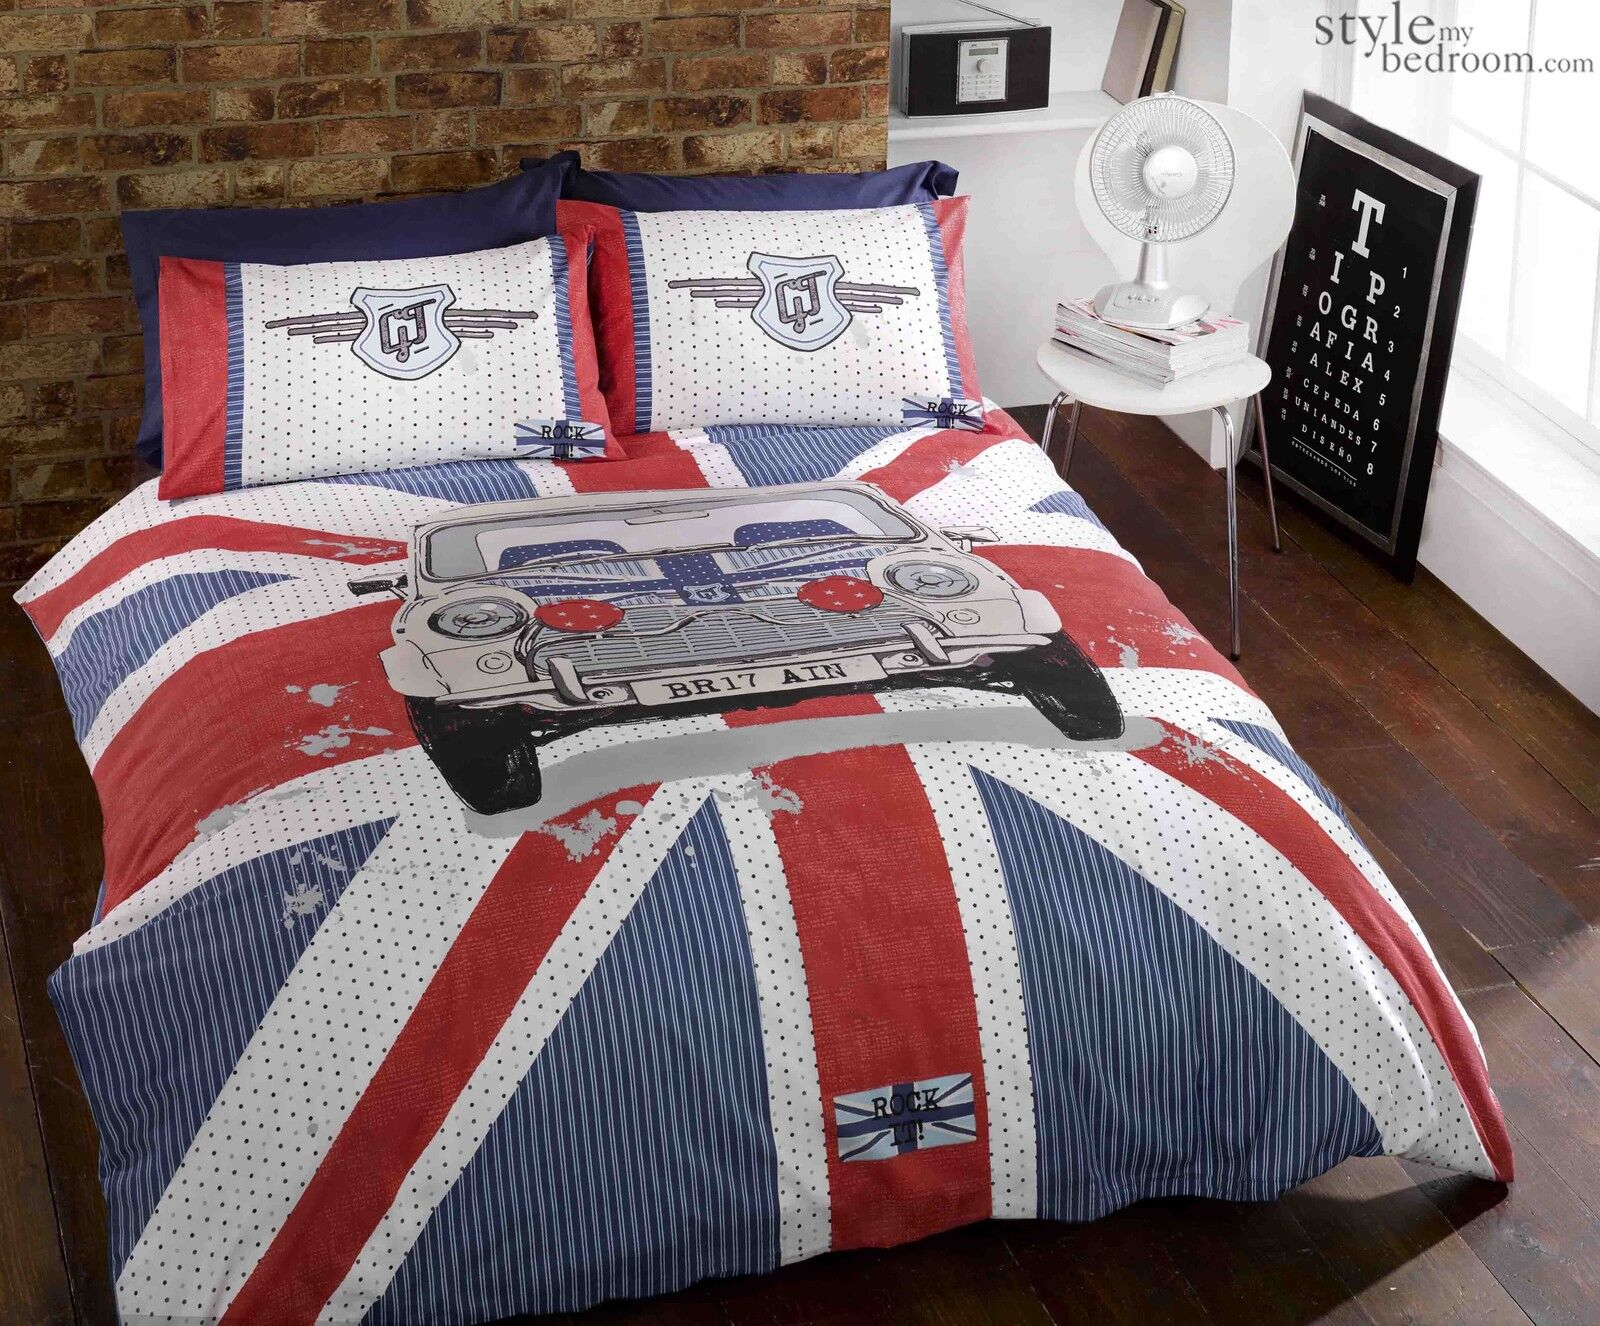 vintage union jack bedding images galleries with a bite. Black Bedroom Furniture Sets. Home Design Ideas